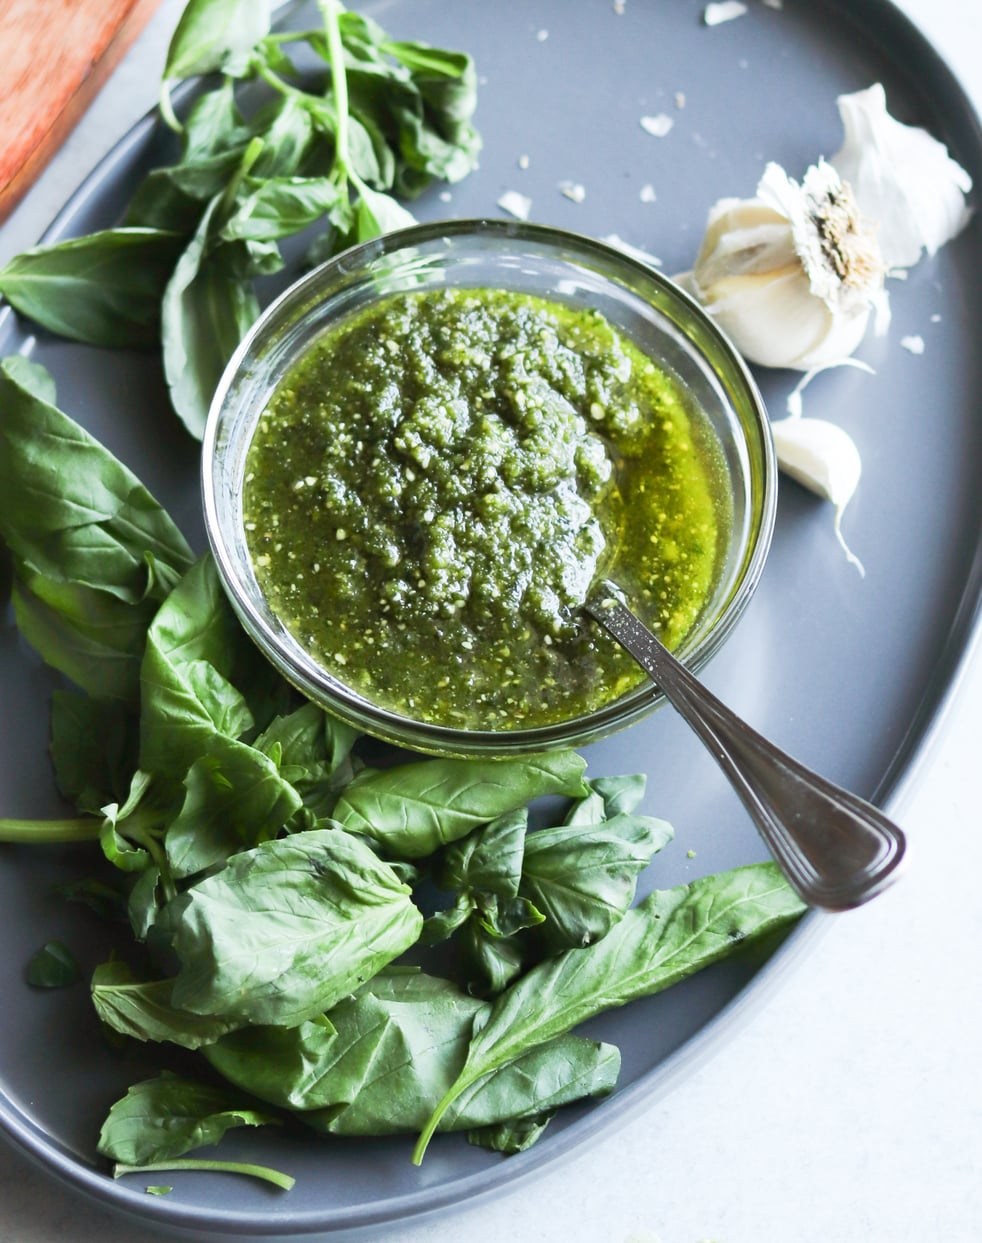 A glass dish with dairy free, Whole30 pesto inside surrounded by basil and garlic.